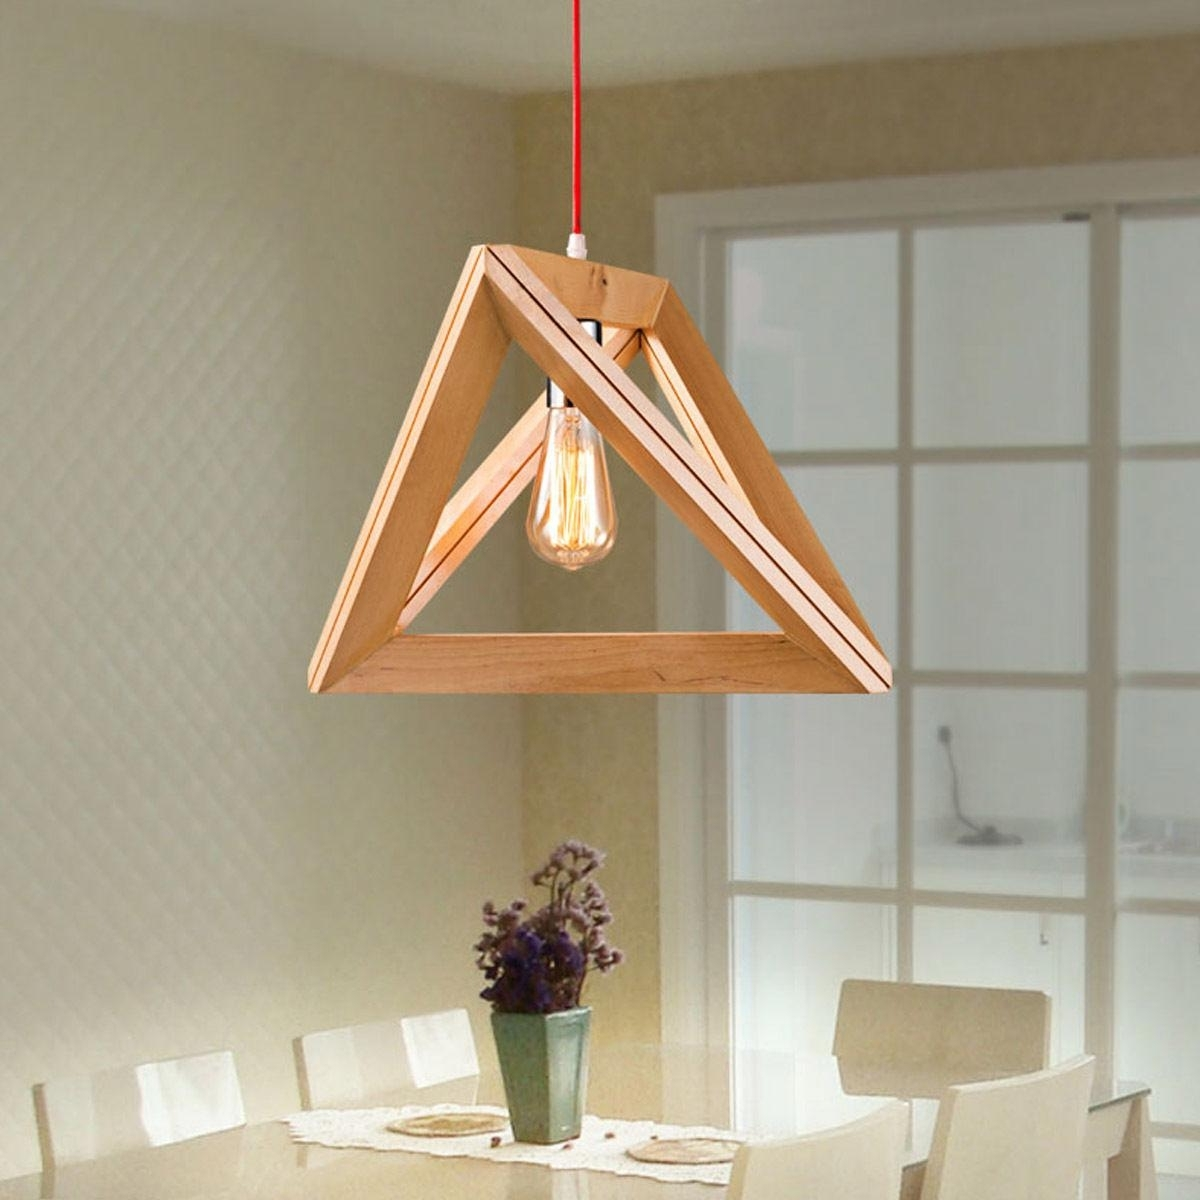 Most Recently Released Wooden Chandeliers Regarding New Modern Art Wooden Ceiling Light Pendant Lamp Lighting Light Wood (View 5 of 15)